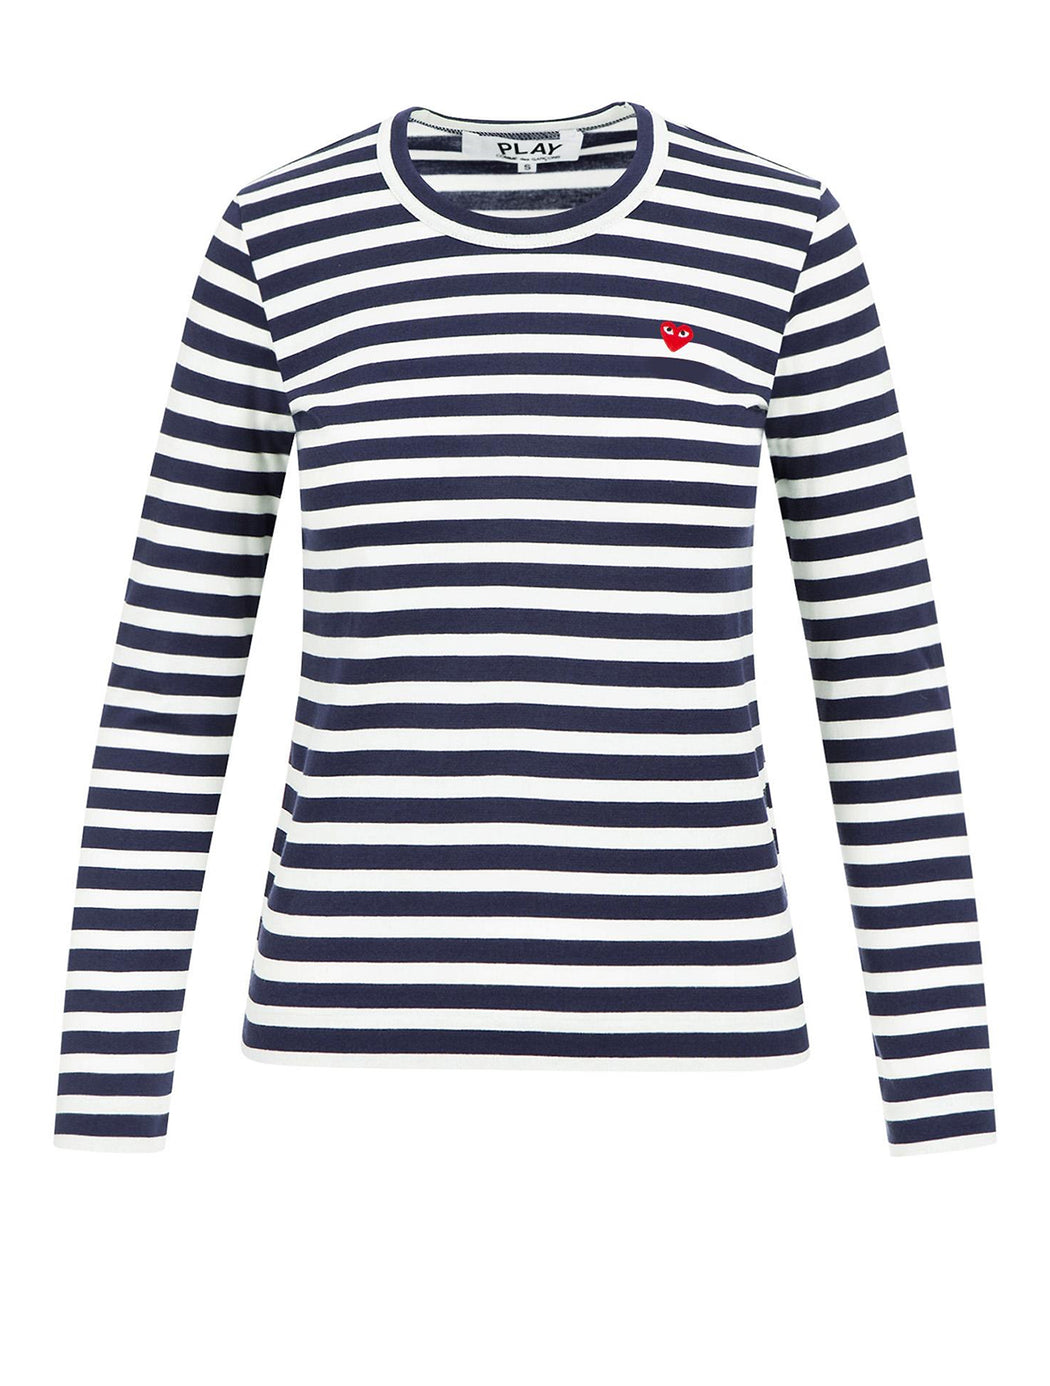 Little Heart Striped Long Sleeve T-Shirt